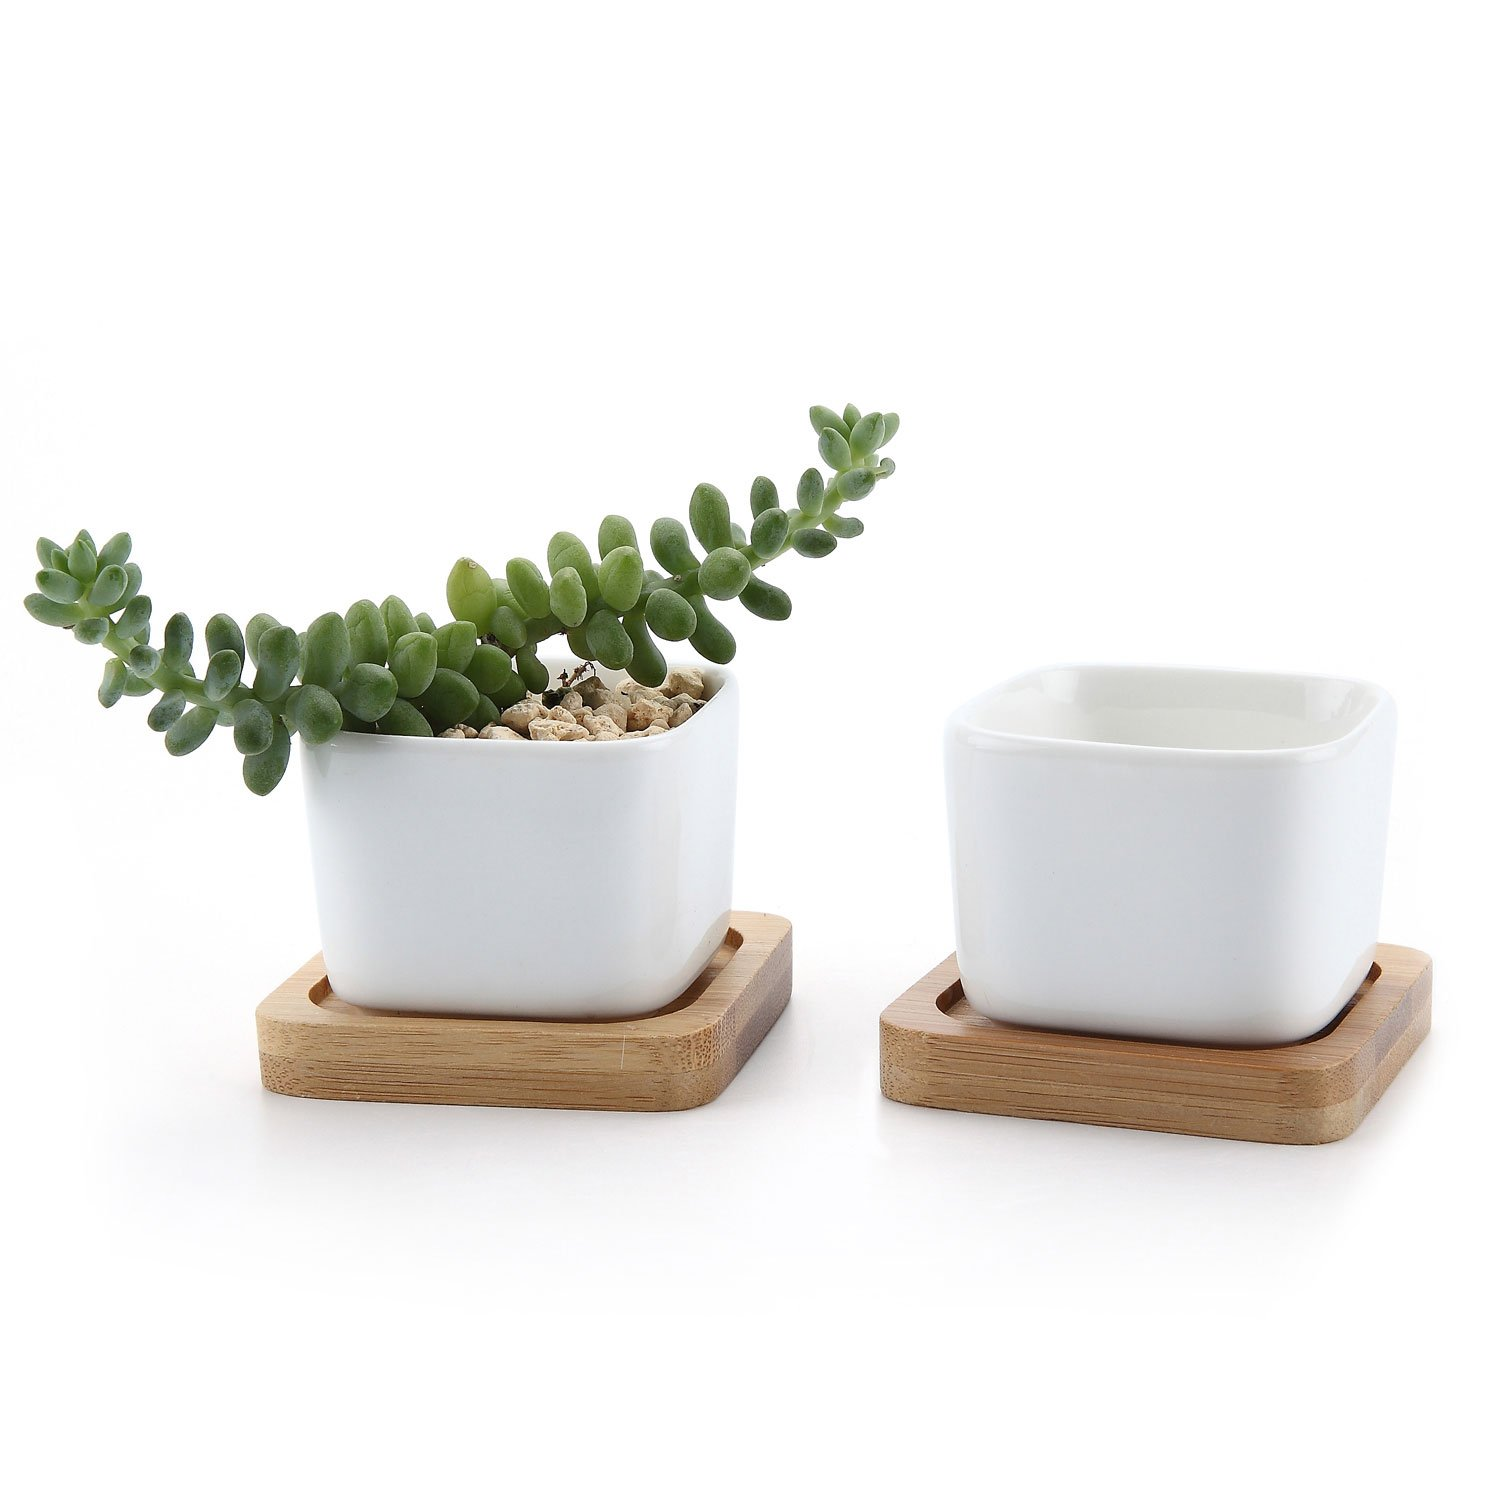 T4U 2 Inch Ceramic White Mini Square Succulent Plant Pot Cactus Plant Pot with Free Bamboo Tray Package 1 Pack of 2